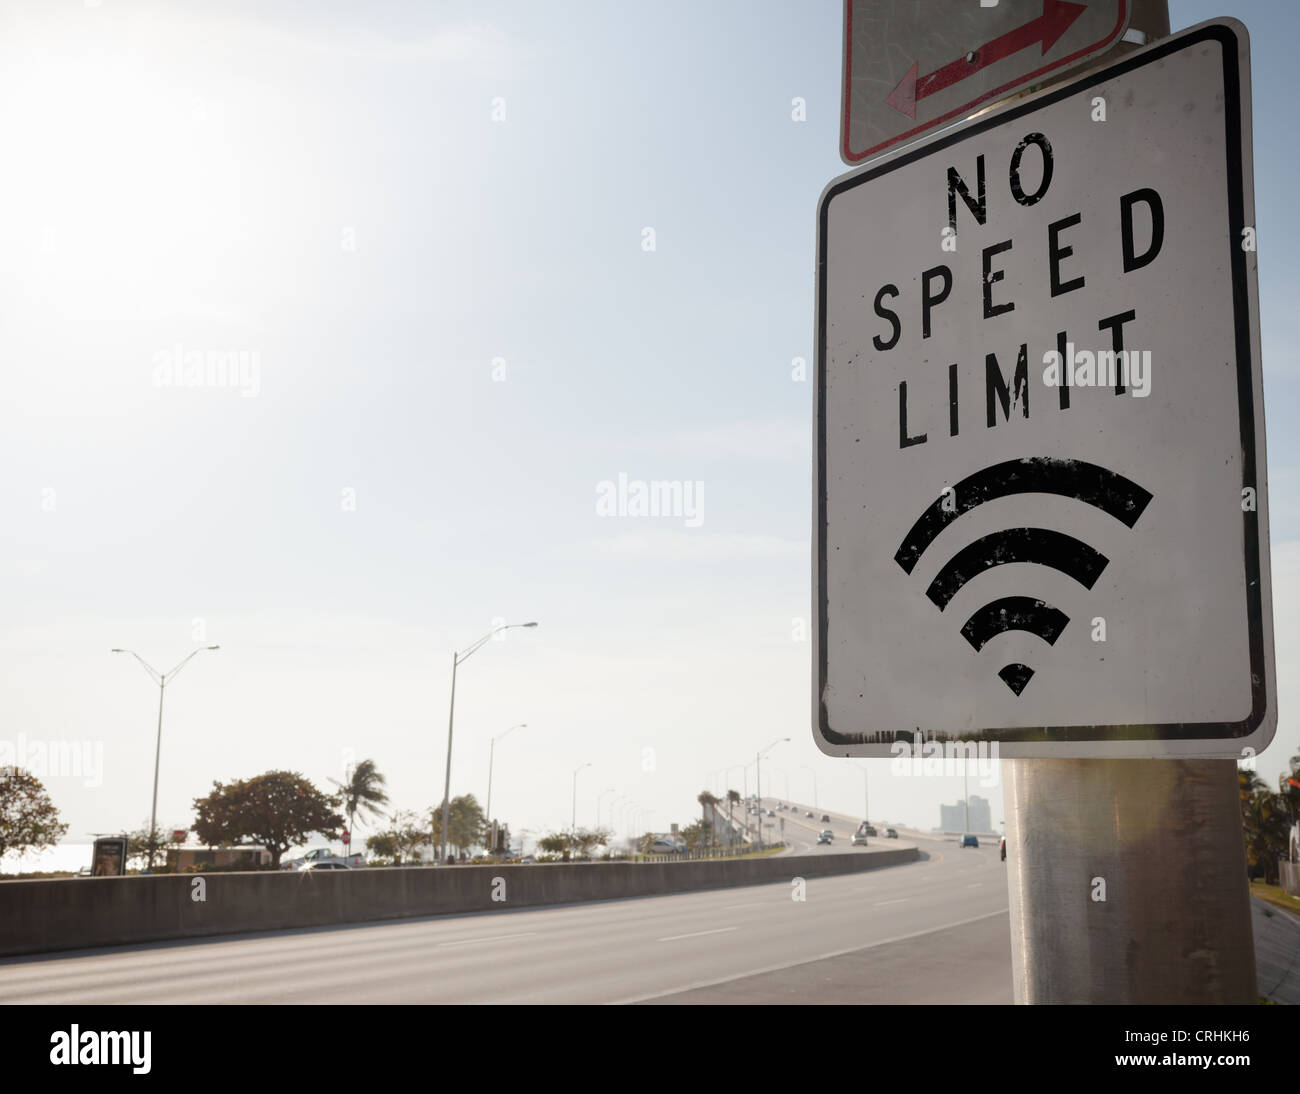 No speed limit sign on freeway - Stock Image